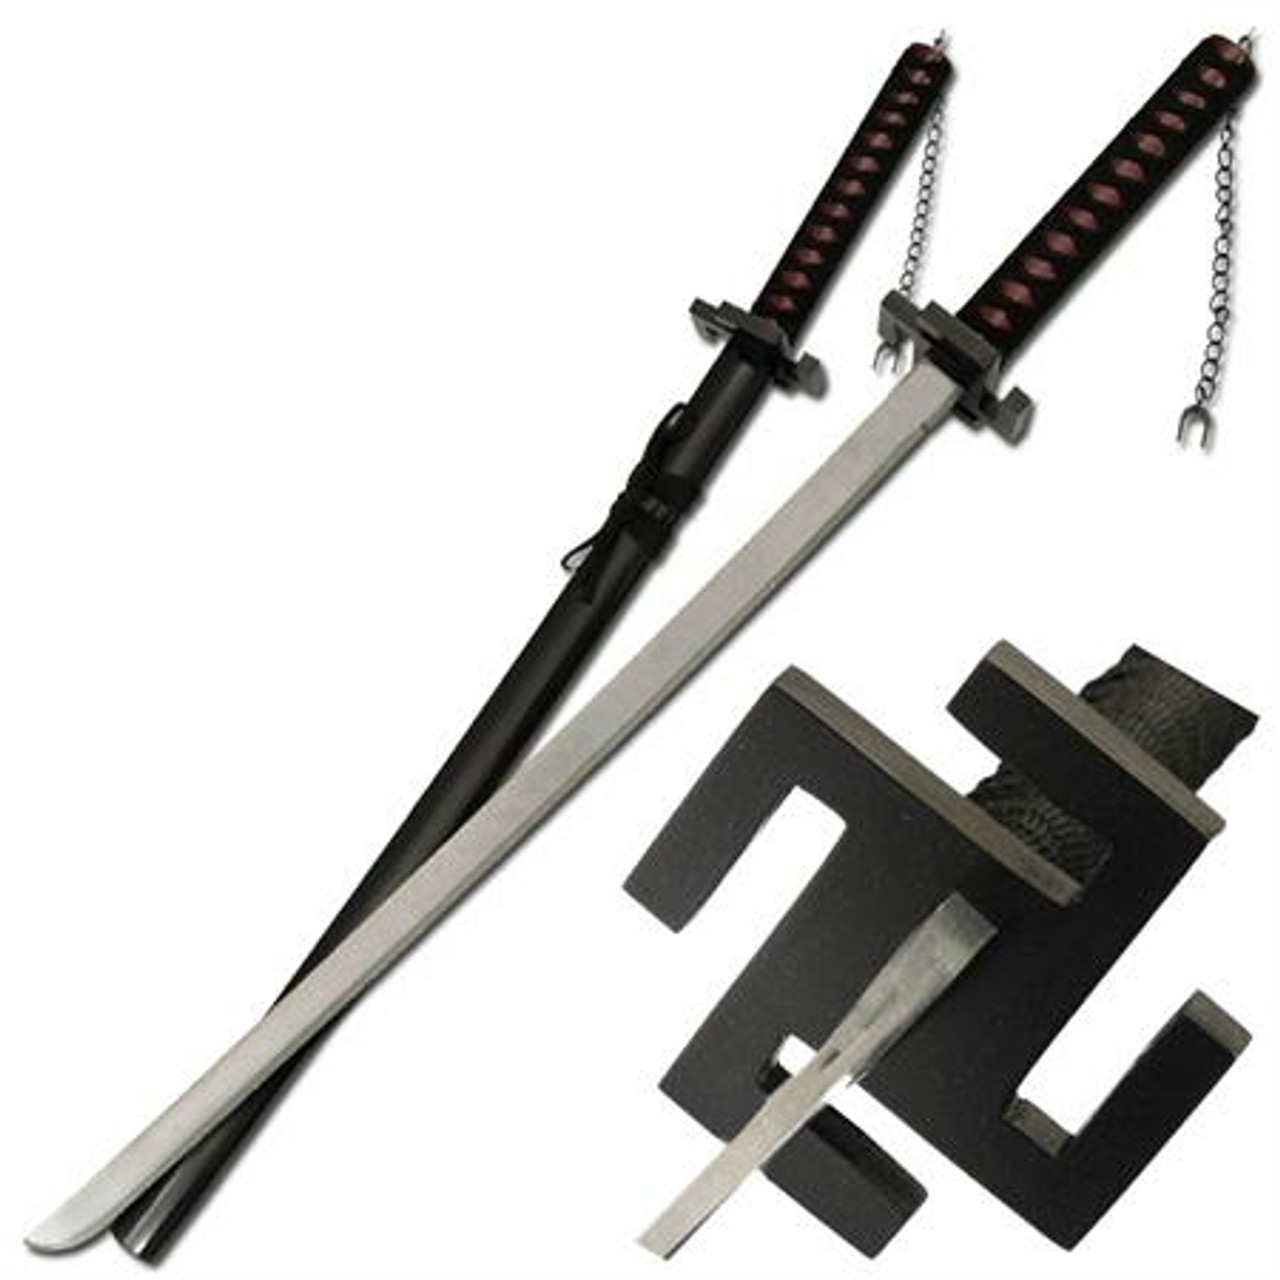 Wooden Swords and Training Equipment